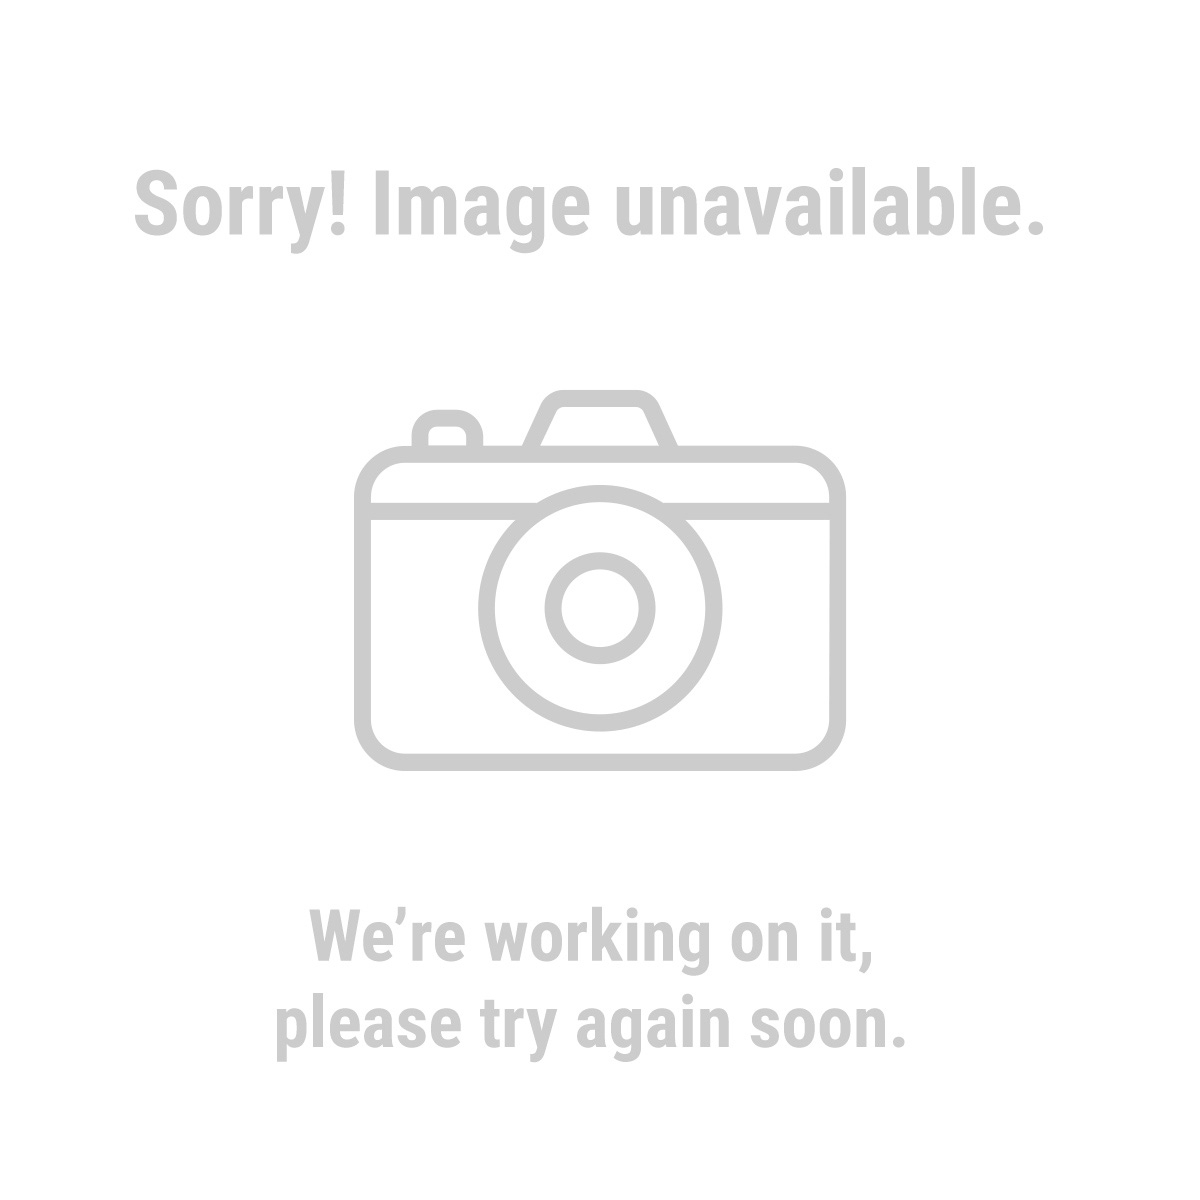 HFT 61953 50 ft. x 12 Gauge Triple Tap Extension Cord with Indicator Light